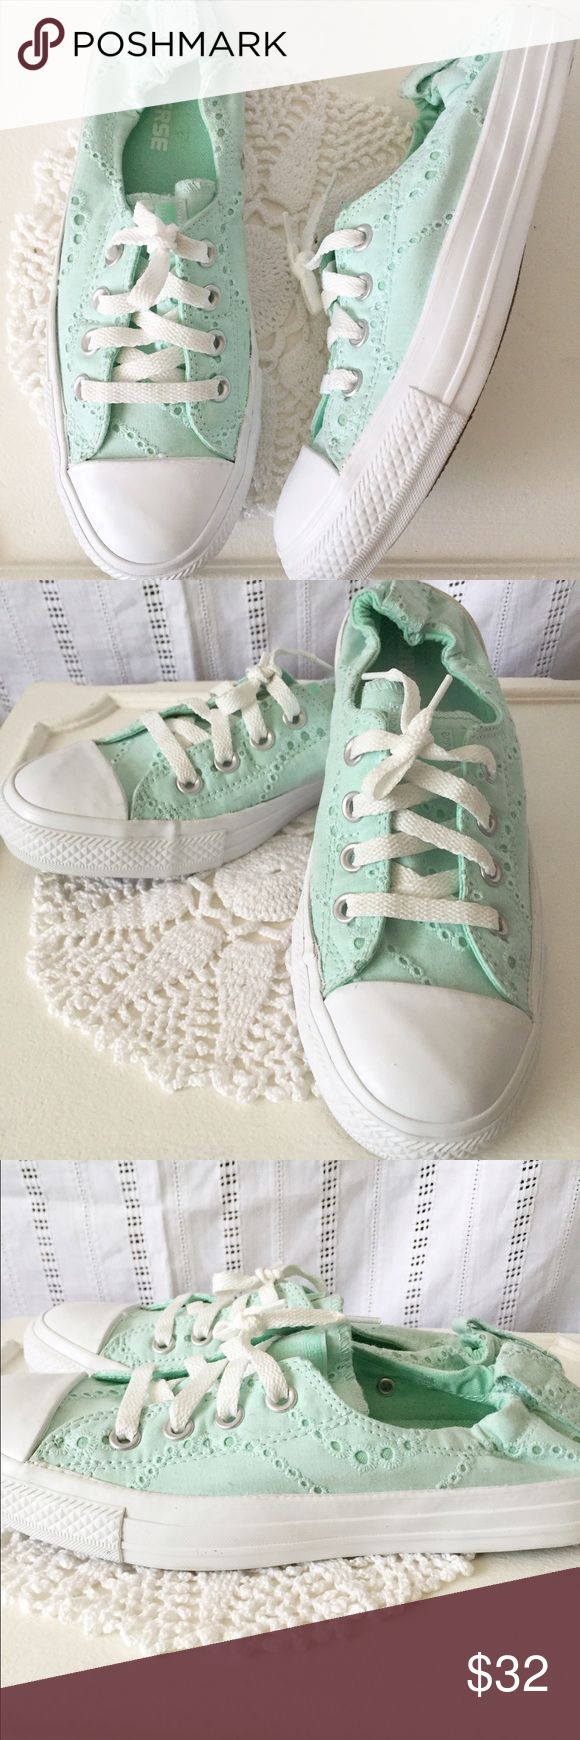 Converse Mint Green Eyelet Sneakers Chucks Size 8 Never worn mint green eyelet converse in a size 8. In excellent clean condition. Converse Shoes Athletic Shoes